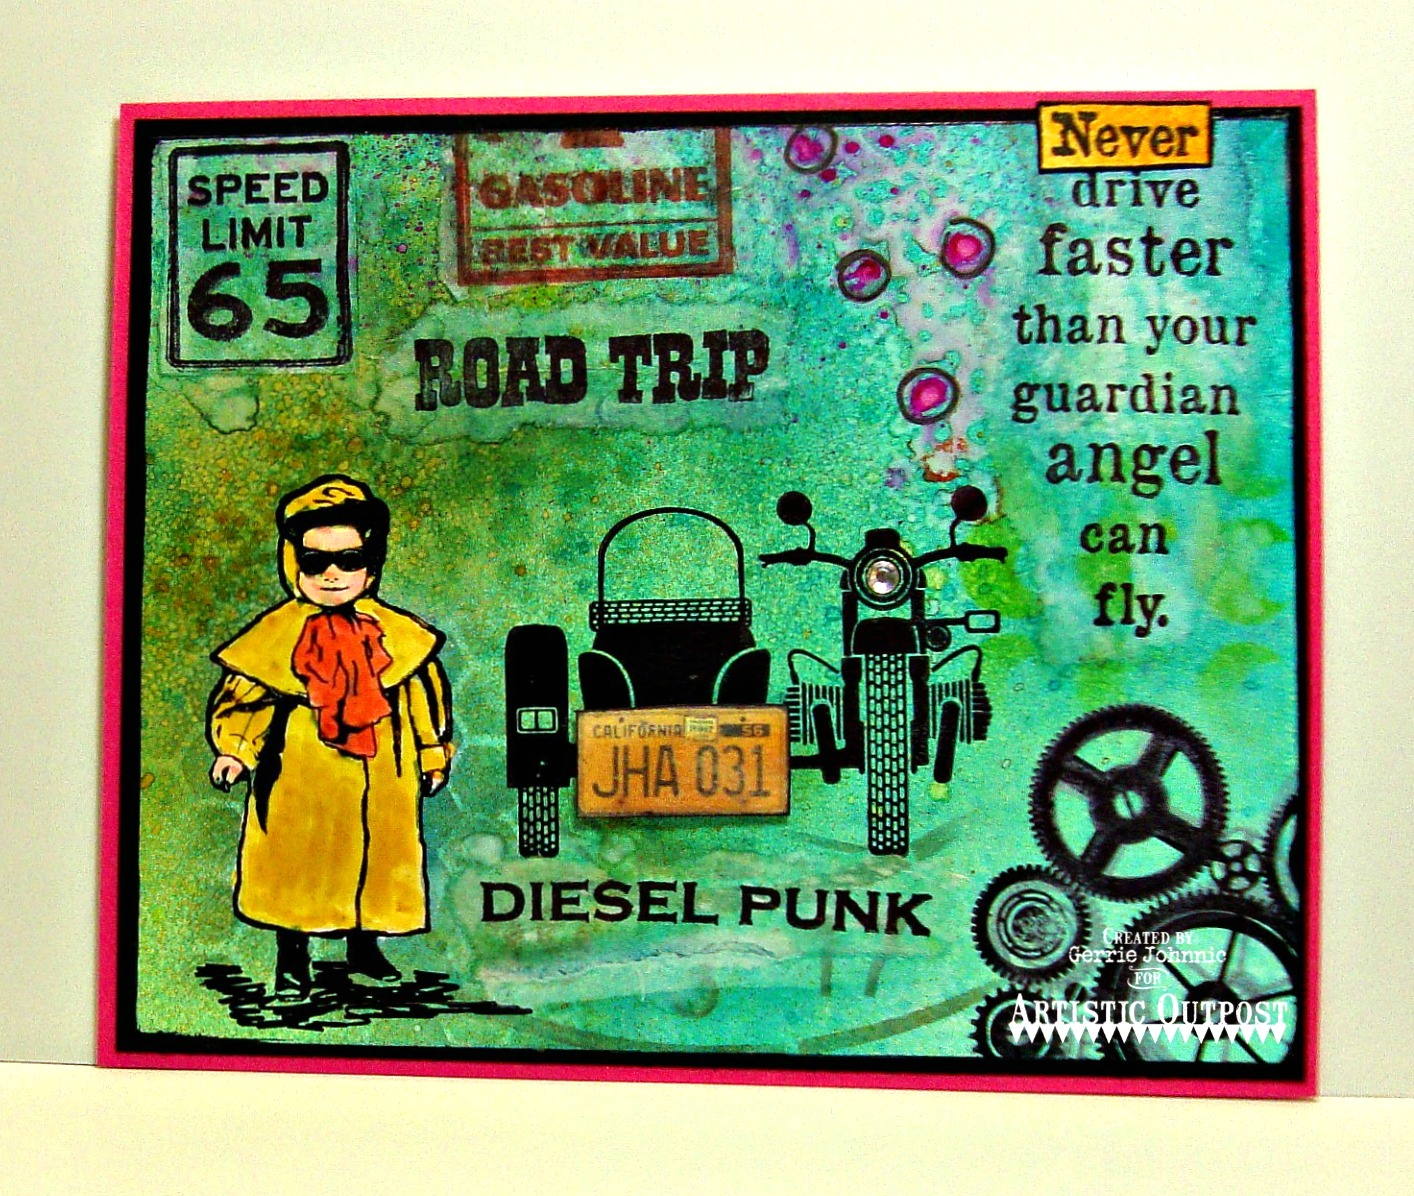 Stamps - Artistic Outpost Diesel Punk, Route 66, Industrial Backgrounds